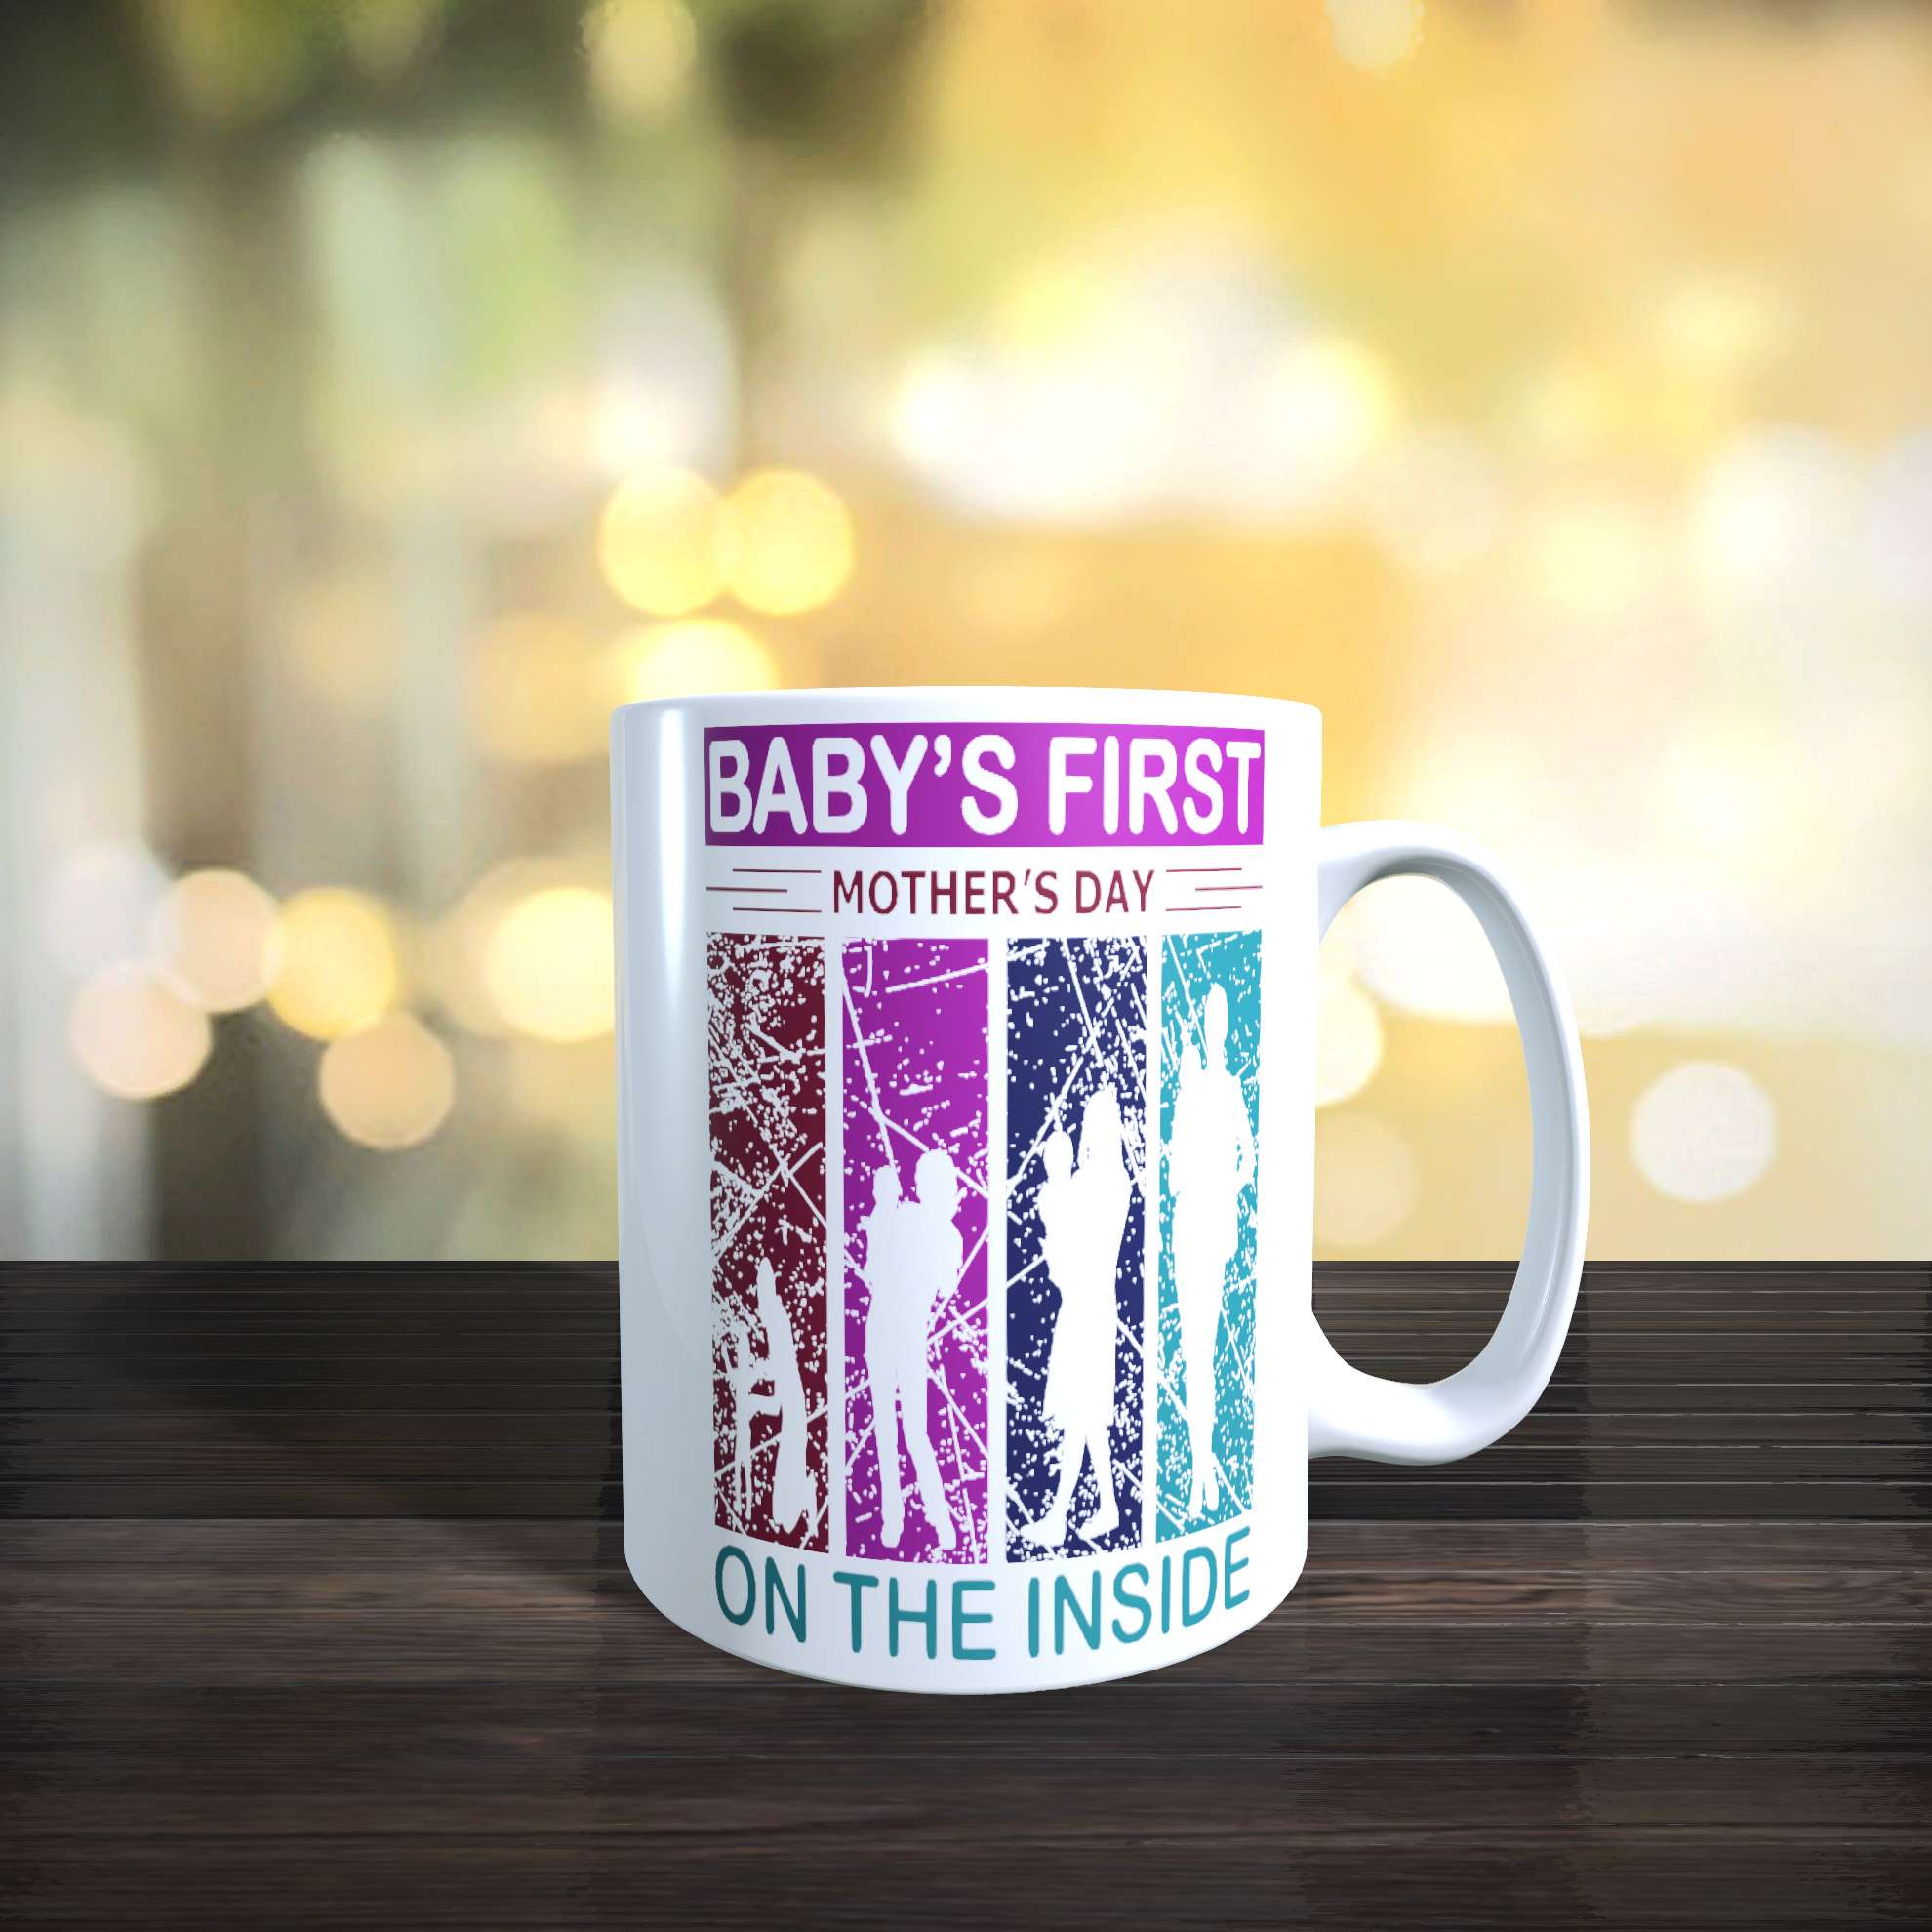 Cute Unborn Baby's First Mothers Day 11oz Ceramic First Mothers Day Gift Mug.